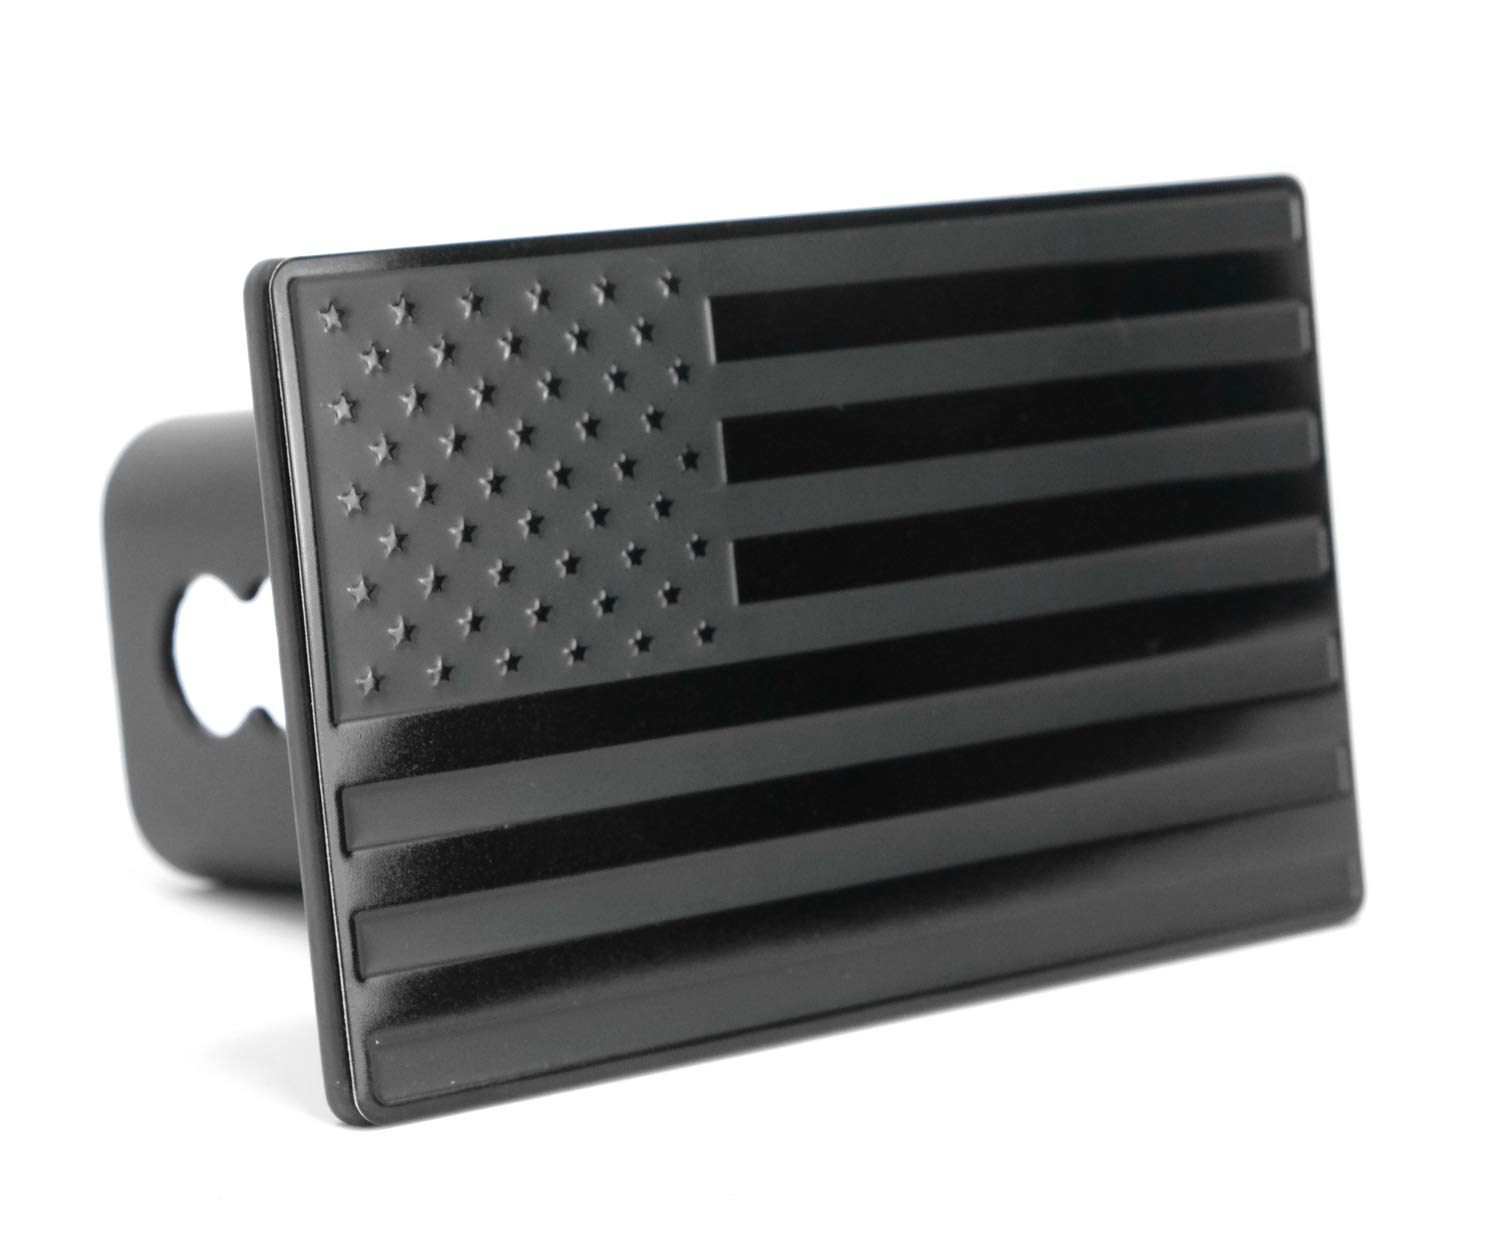 LFPartS USA US American Flag Emblem Metal Trailer Hitch Cover (Fits 2'' Receivers, Black) by LFPartS